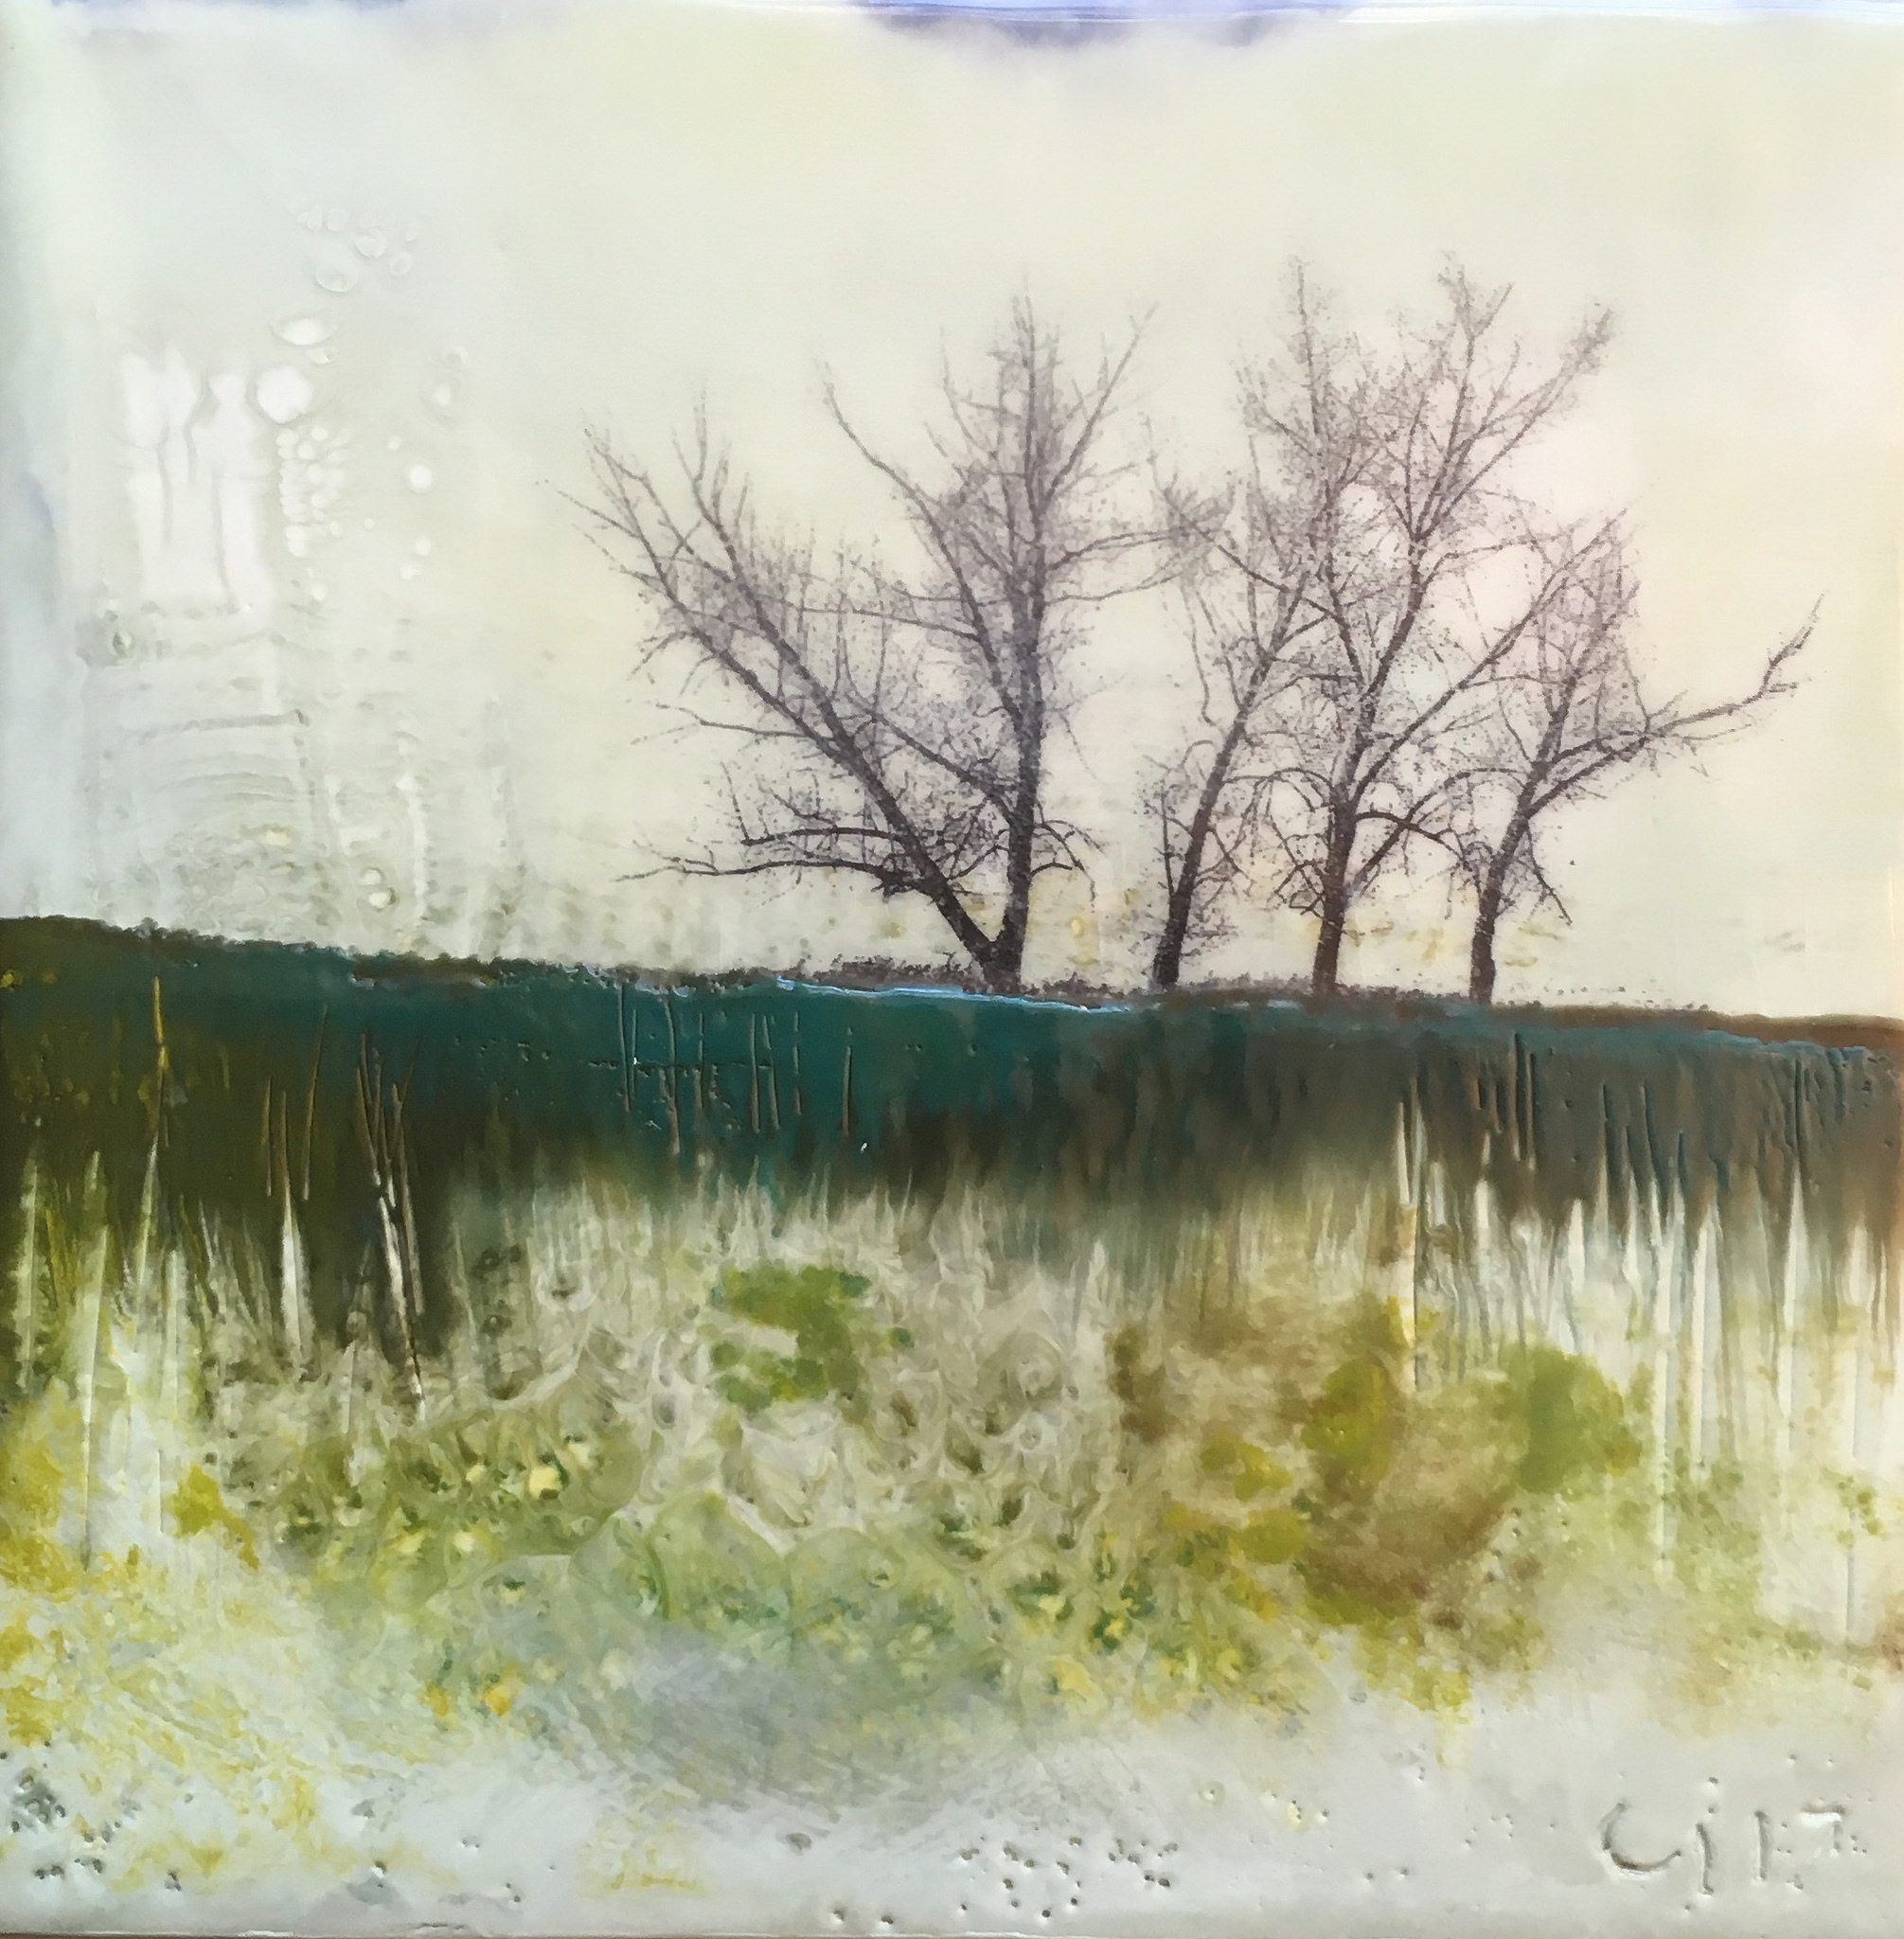 """""""The Stalwarts""""   4x4"""" unframed  encaustic mixed media on board  SOLD  2017"""